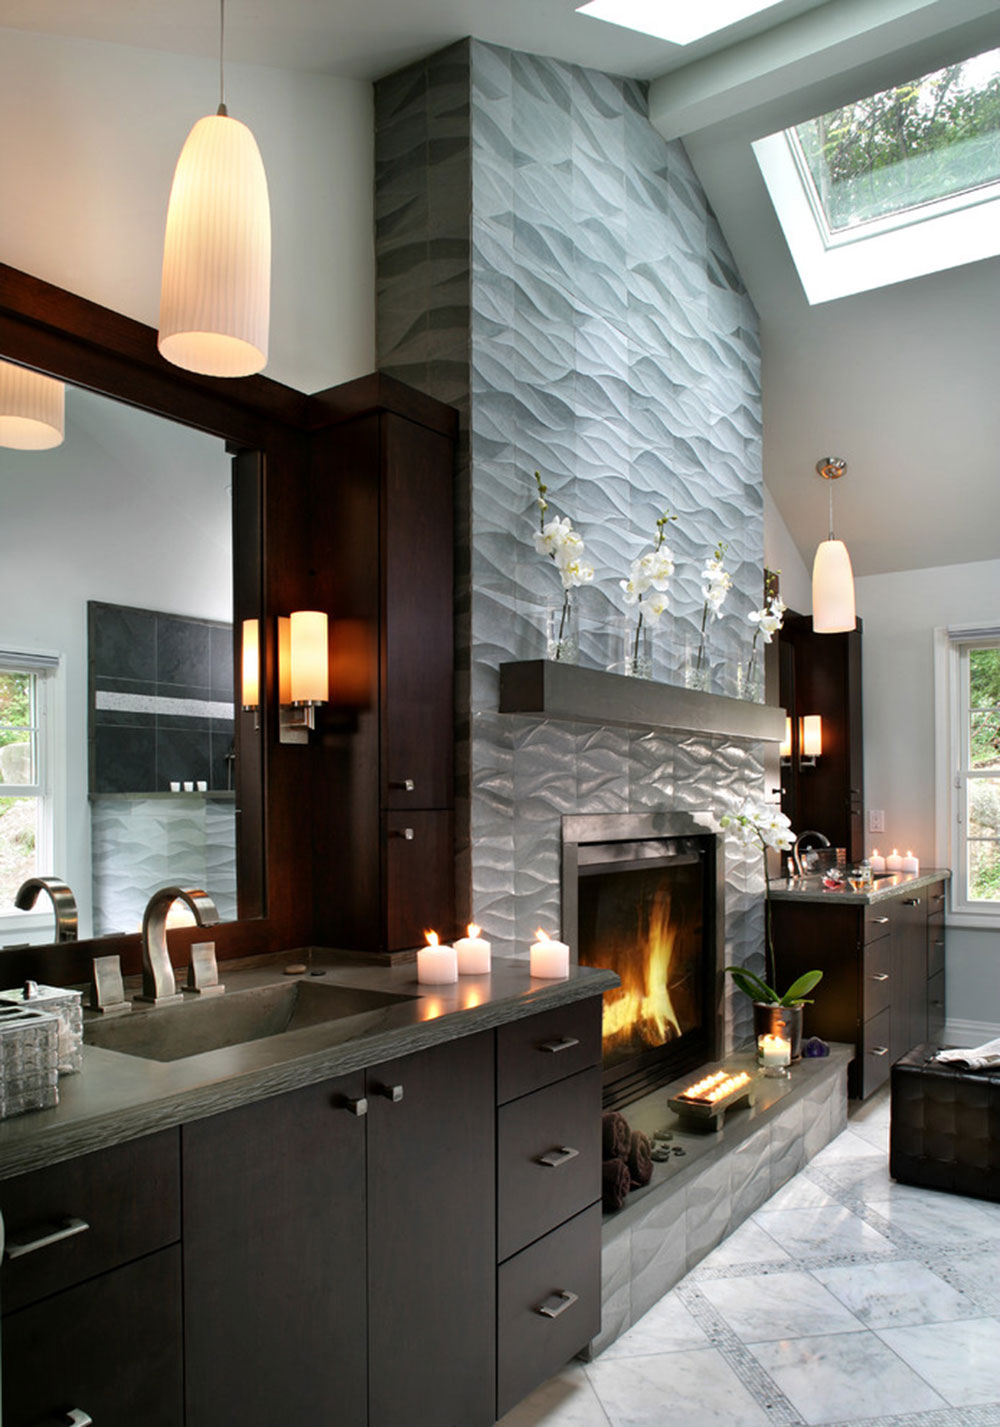 Fireplace Tile Ideas Part - 32: Contemporary-Fireplace-Surround-For-Warm-Homes14 Modern Fireplace Tile Ideas